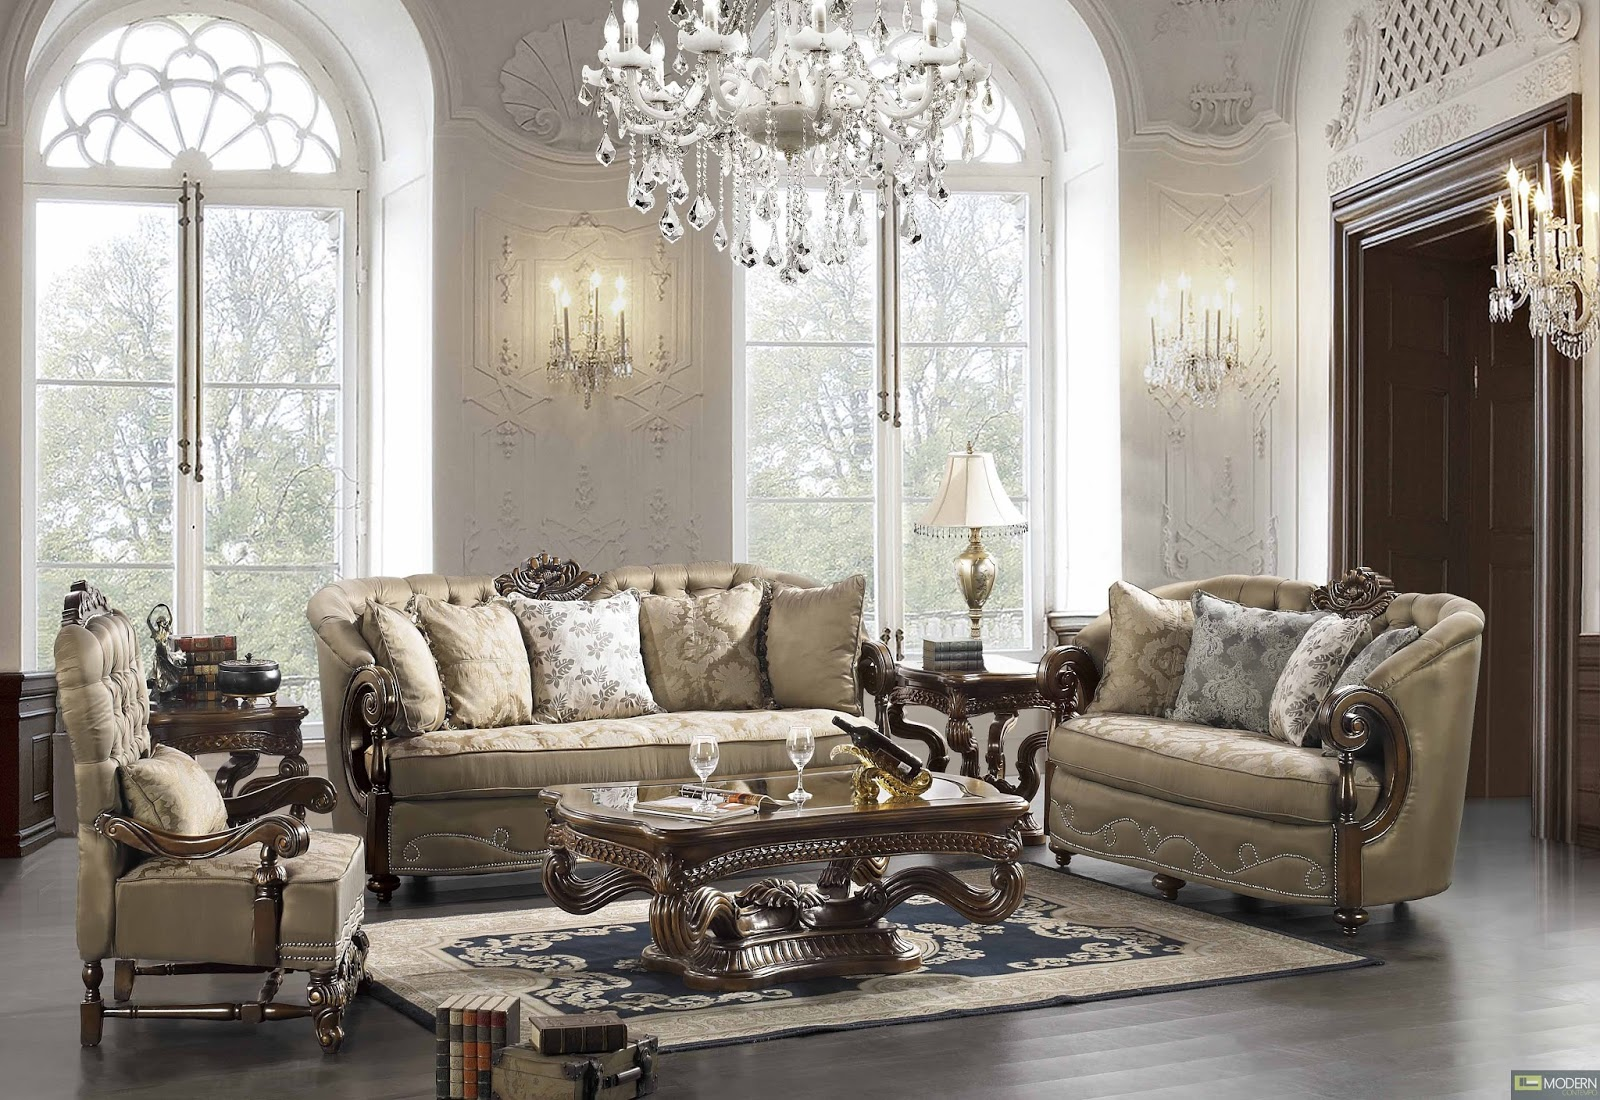 traditional classic furniture styles elegant living room design ideas